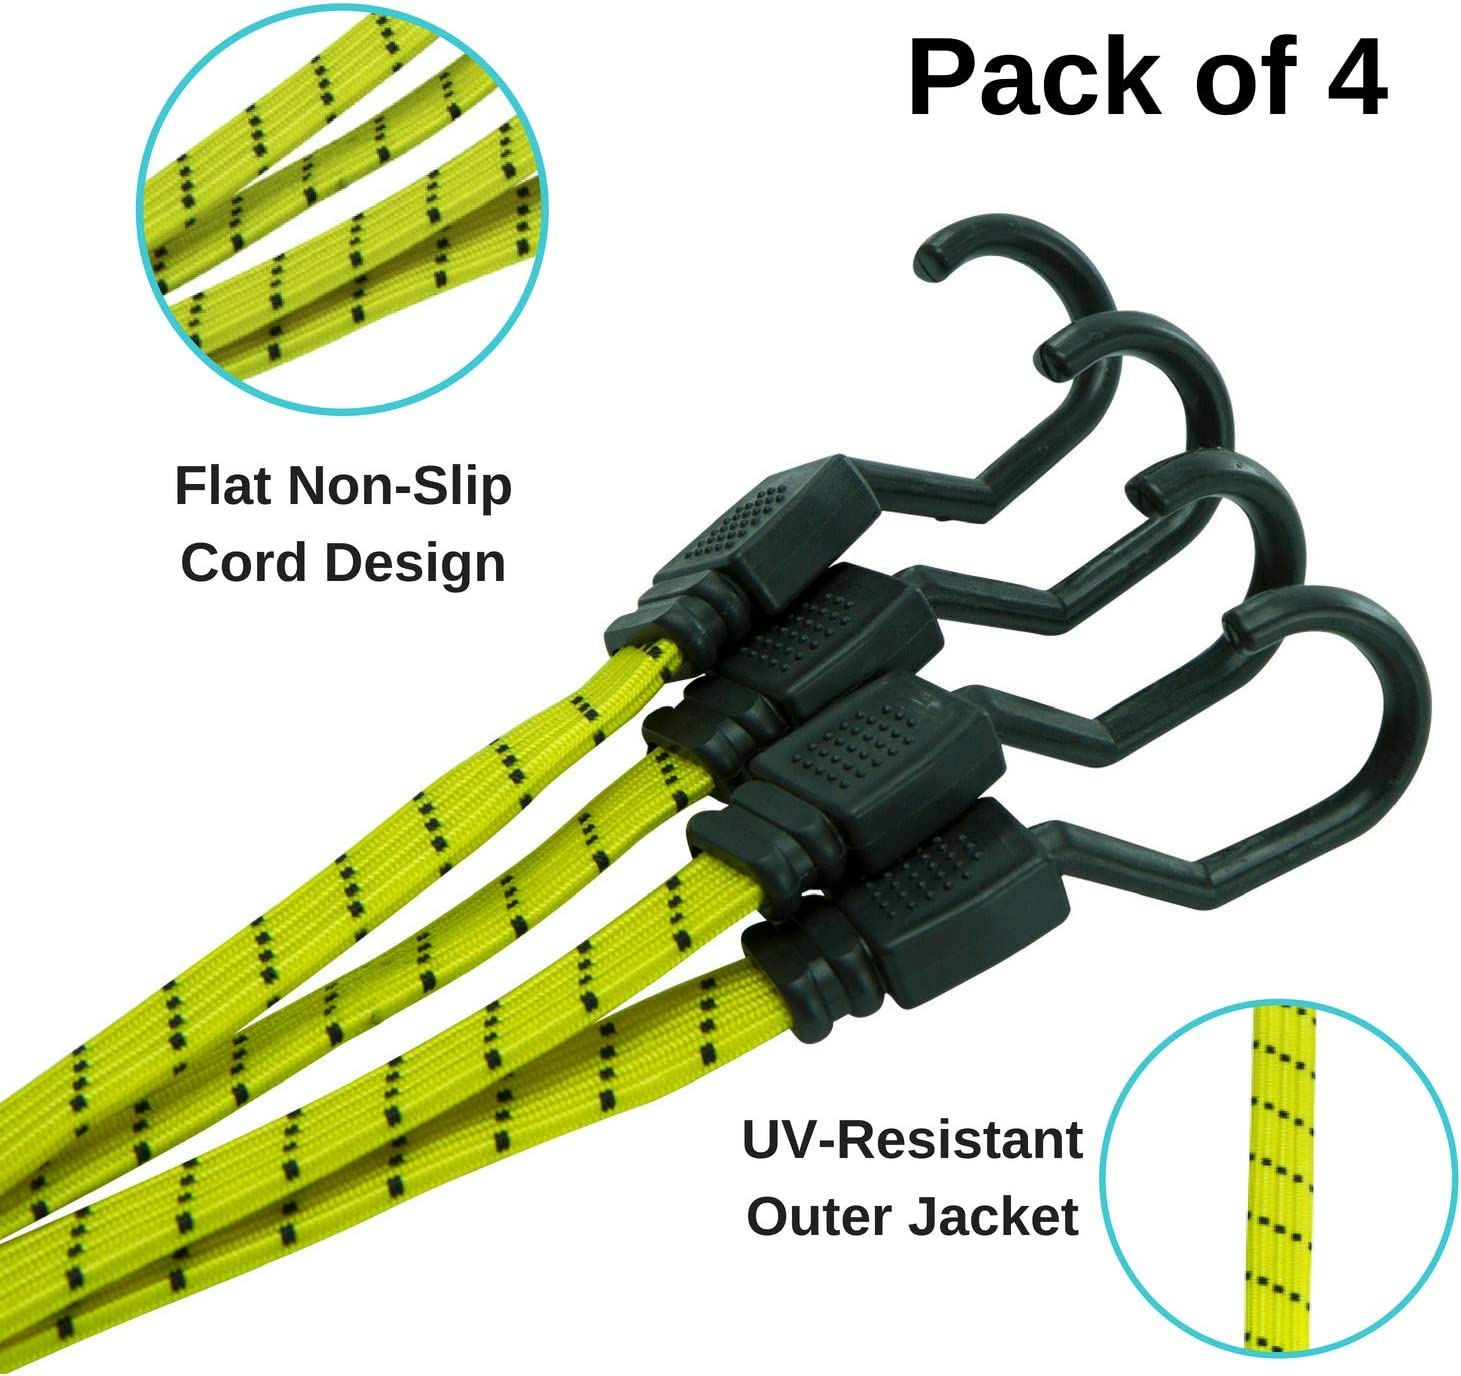 Houseables Bungee Cords with Hooks, Bungie Straps, 4 Pack, 48 Inch Long, Yellow, Flat, Premium Rubber, Bungy Chords, Adjustable, Long Bungi Rope for Dolly, Upcart, Car Trunk, Camping, Luggage, Moving: Automotive